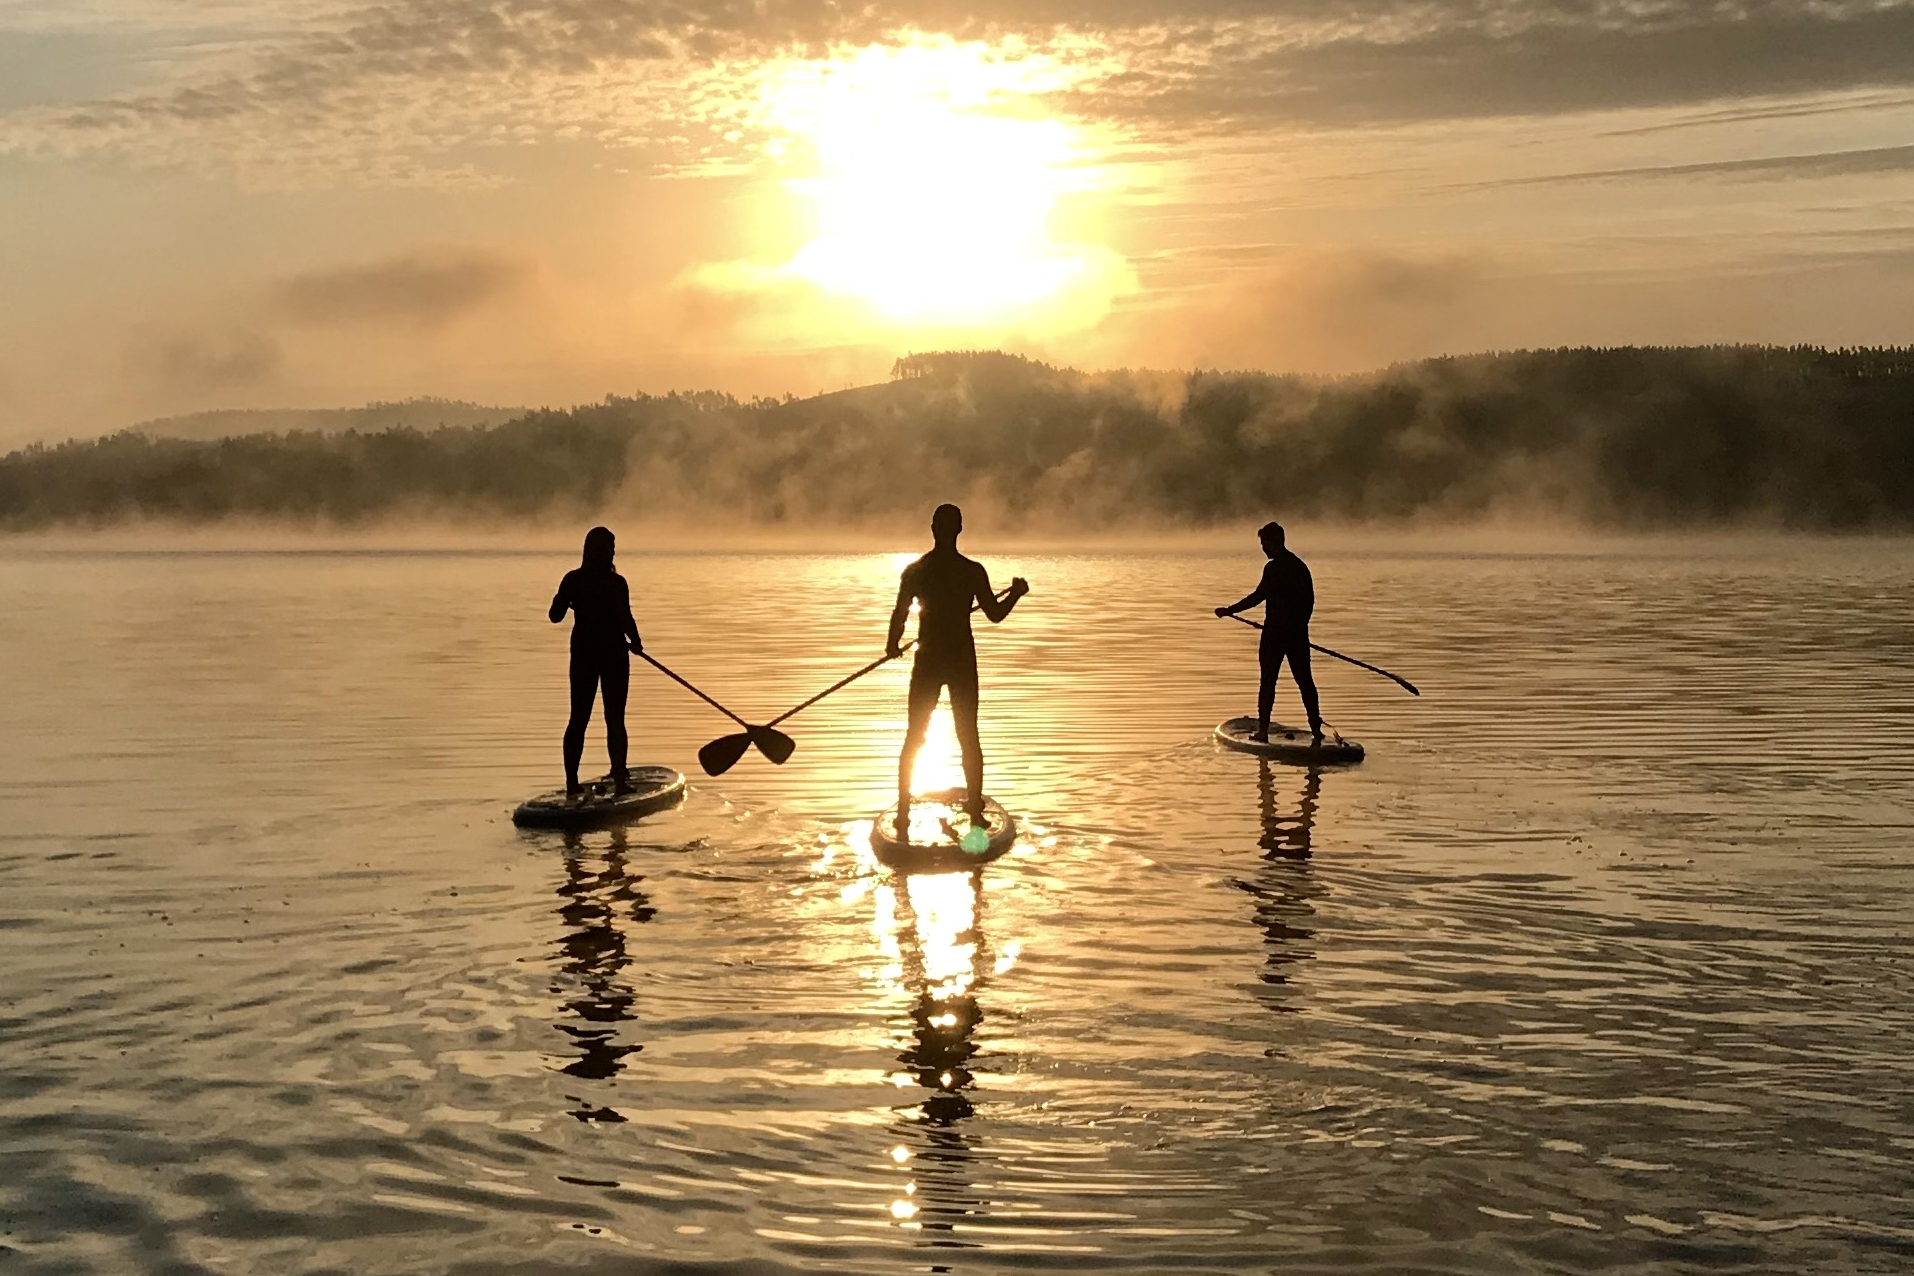 Nowhere2far_SUPLagos_Sunset_LakeBravura_Stand Up Paddle Boarding_Portugal.jpeg